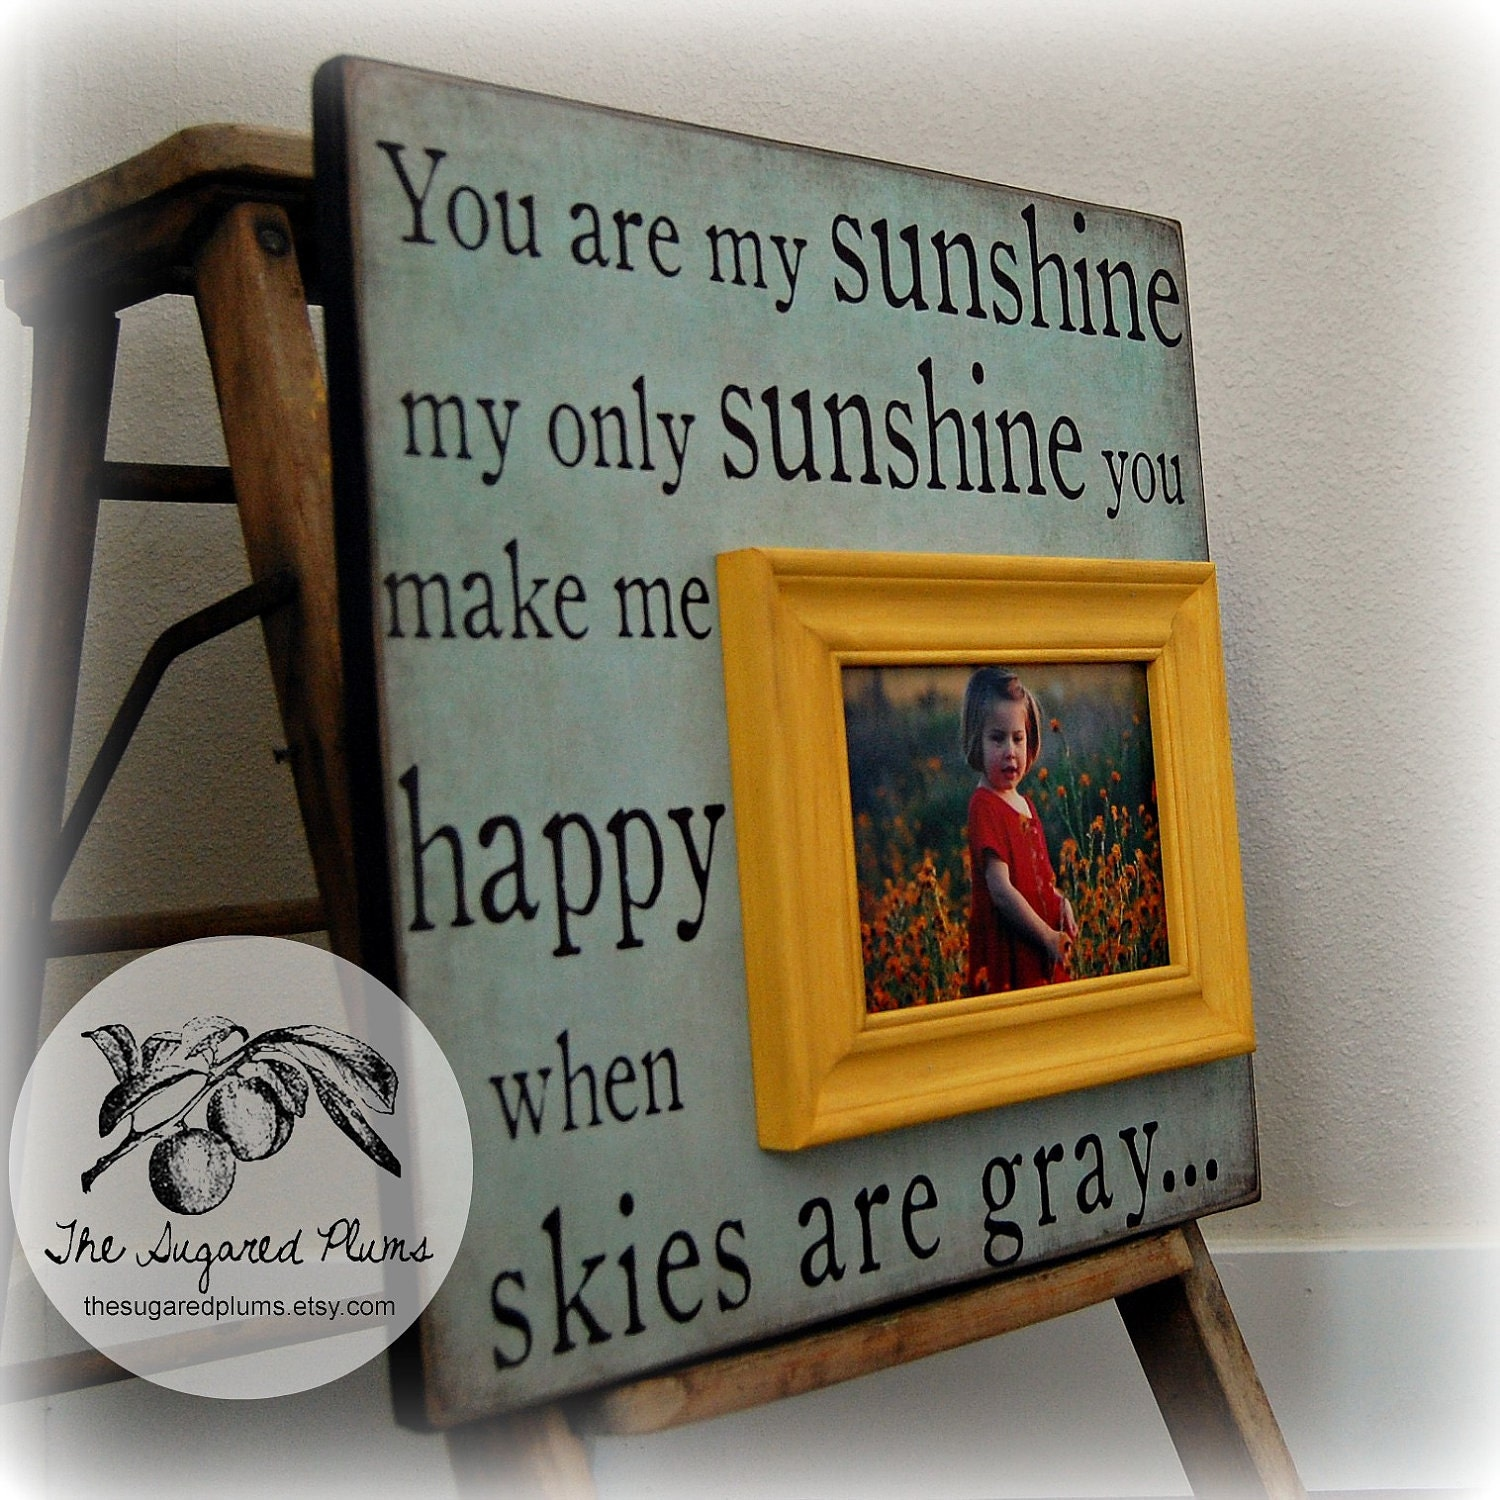 Just Had A Baby Gift Ideas : Baby shower decoration you are my sunshine personalized